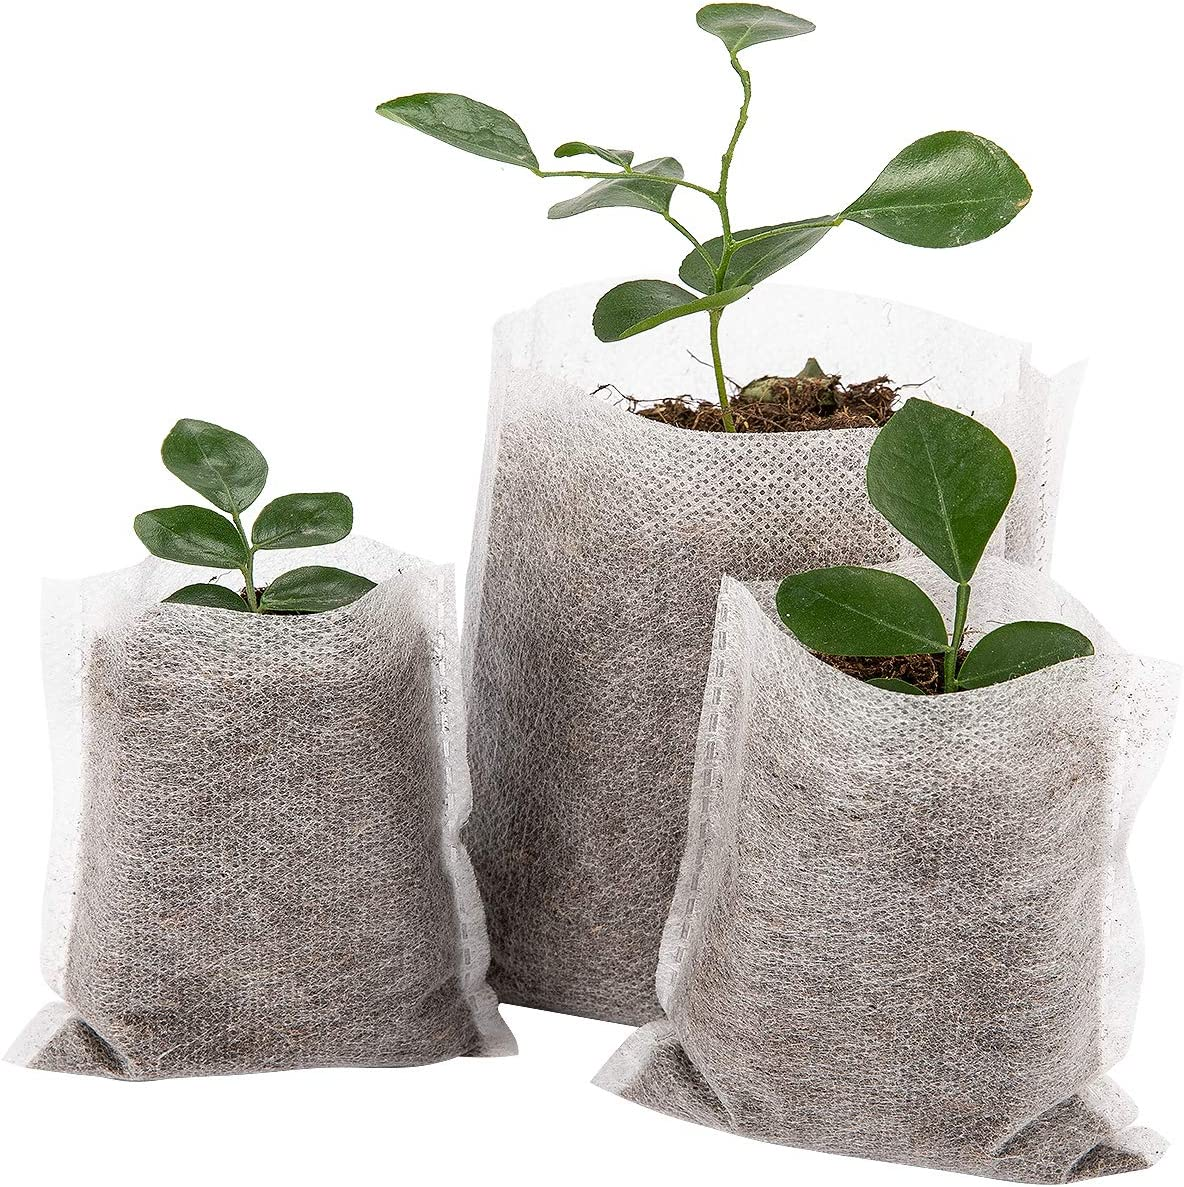 Biodegradable bags Vegetable Seedling Pouch Non-Woven 10pcs